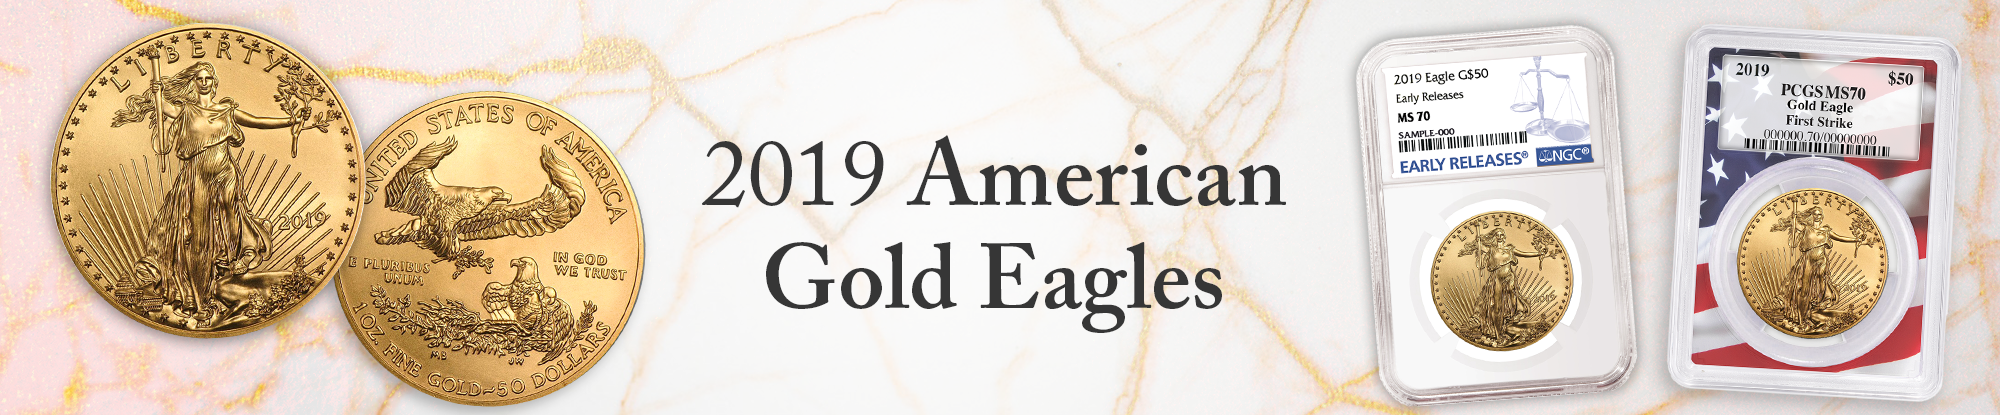 2019 American Gold Eagle